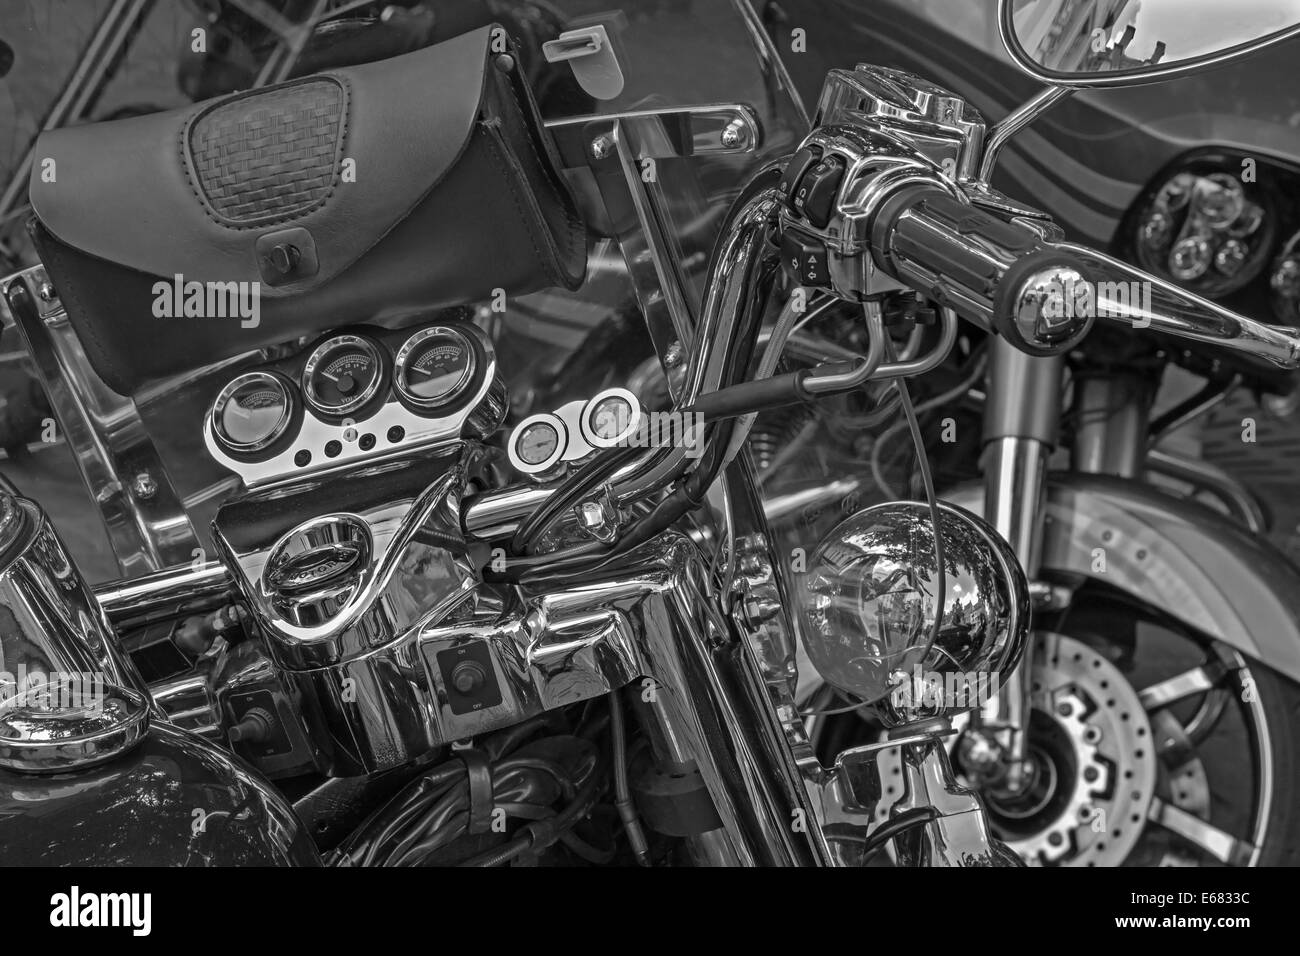 Detail of the bike - Stock Image